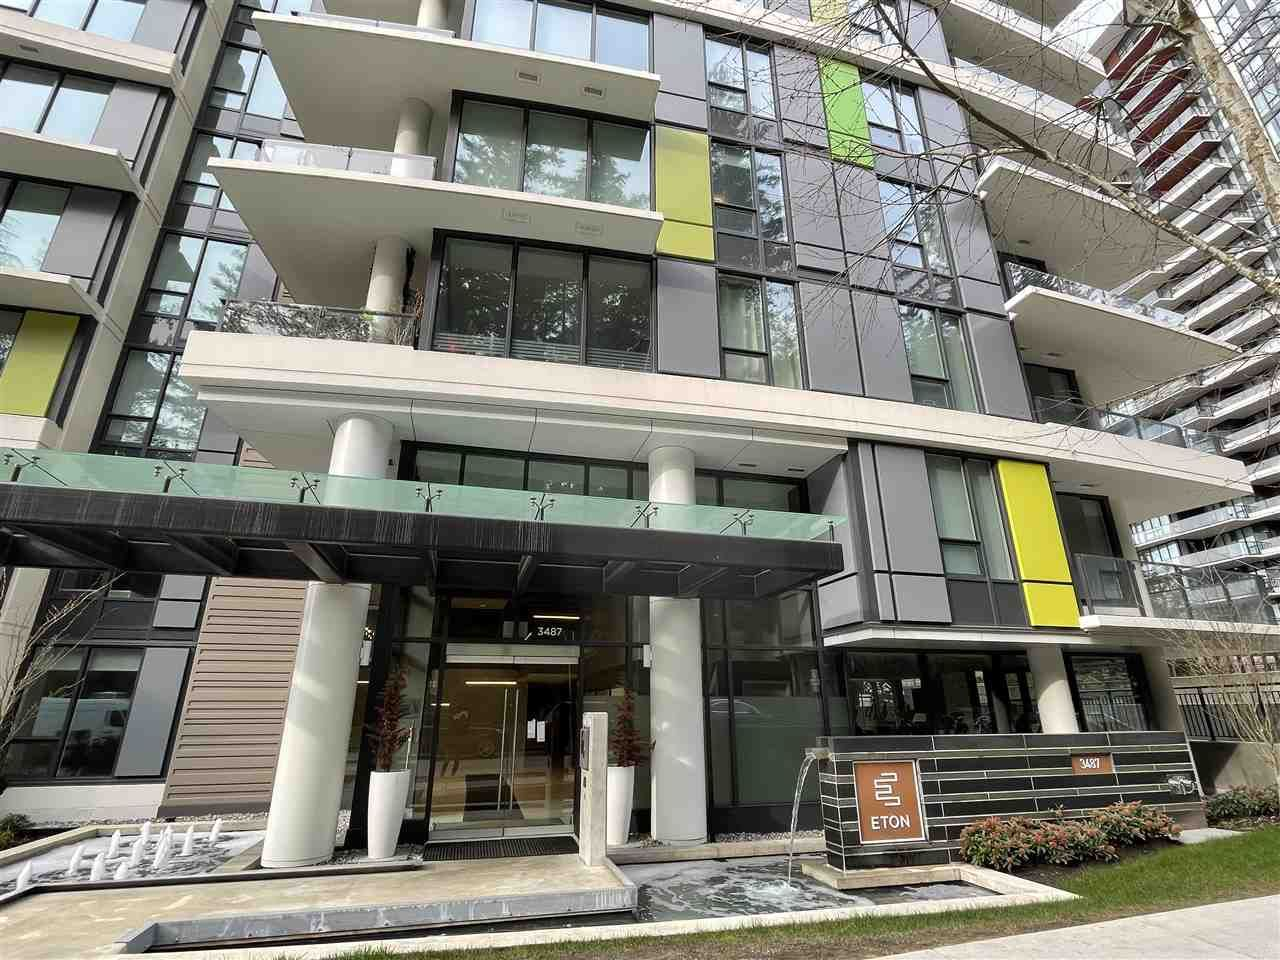 Main Photo: 506 3487 BINNING Road in Vancouver: University VW Condo for sale (Vancouver West)  : MLS®# R2544108